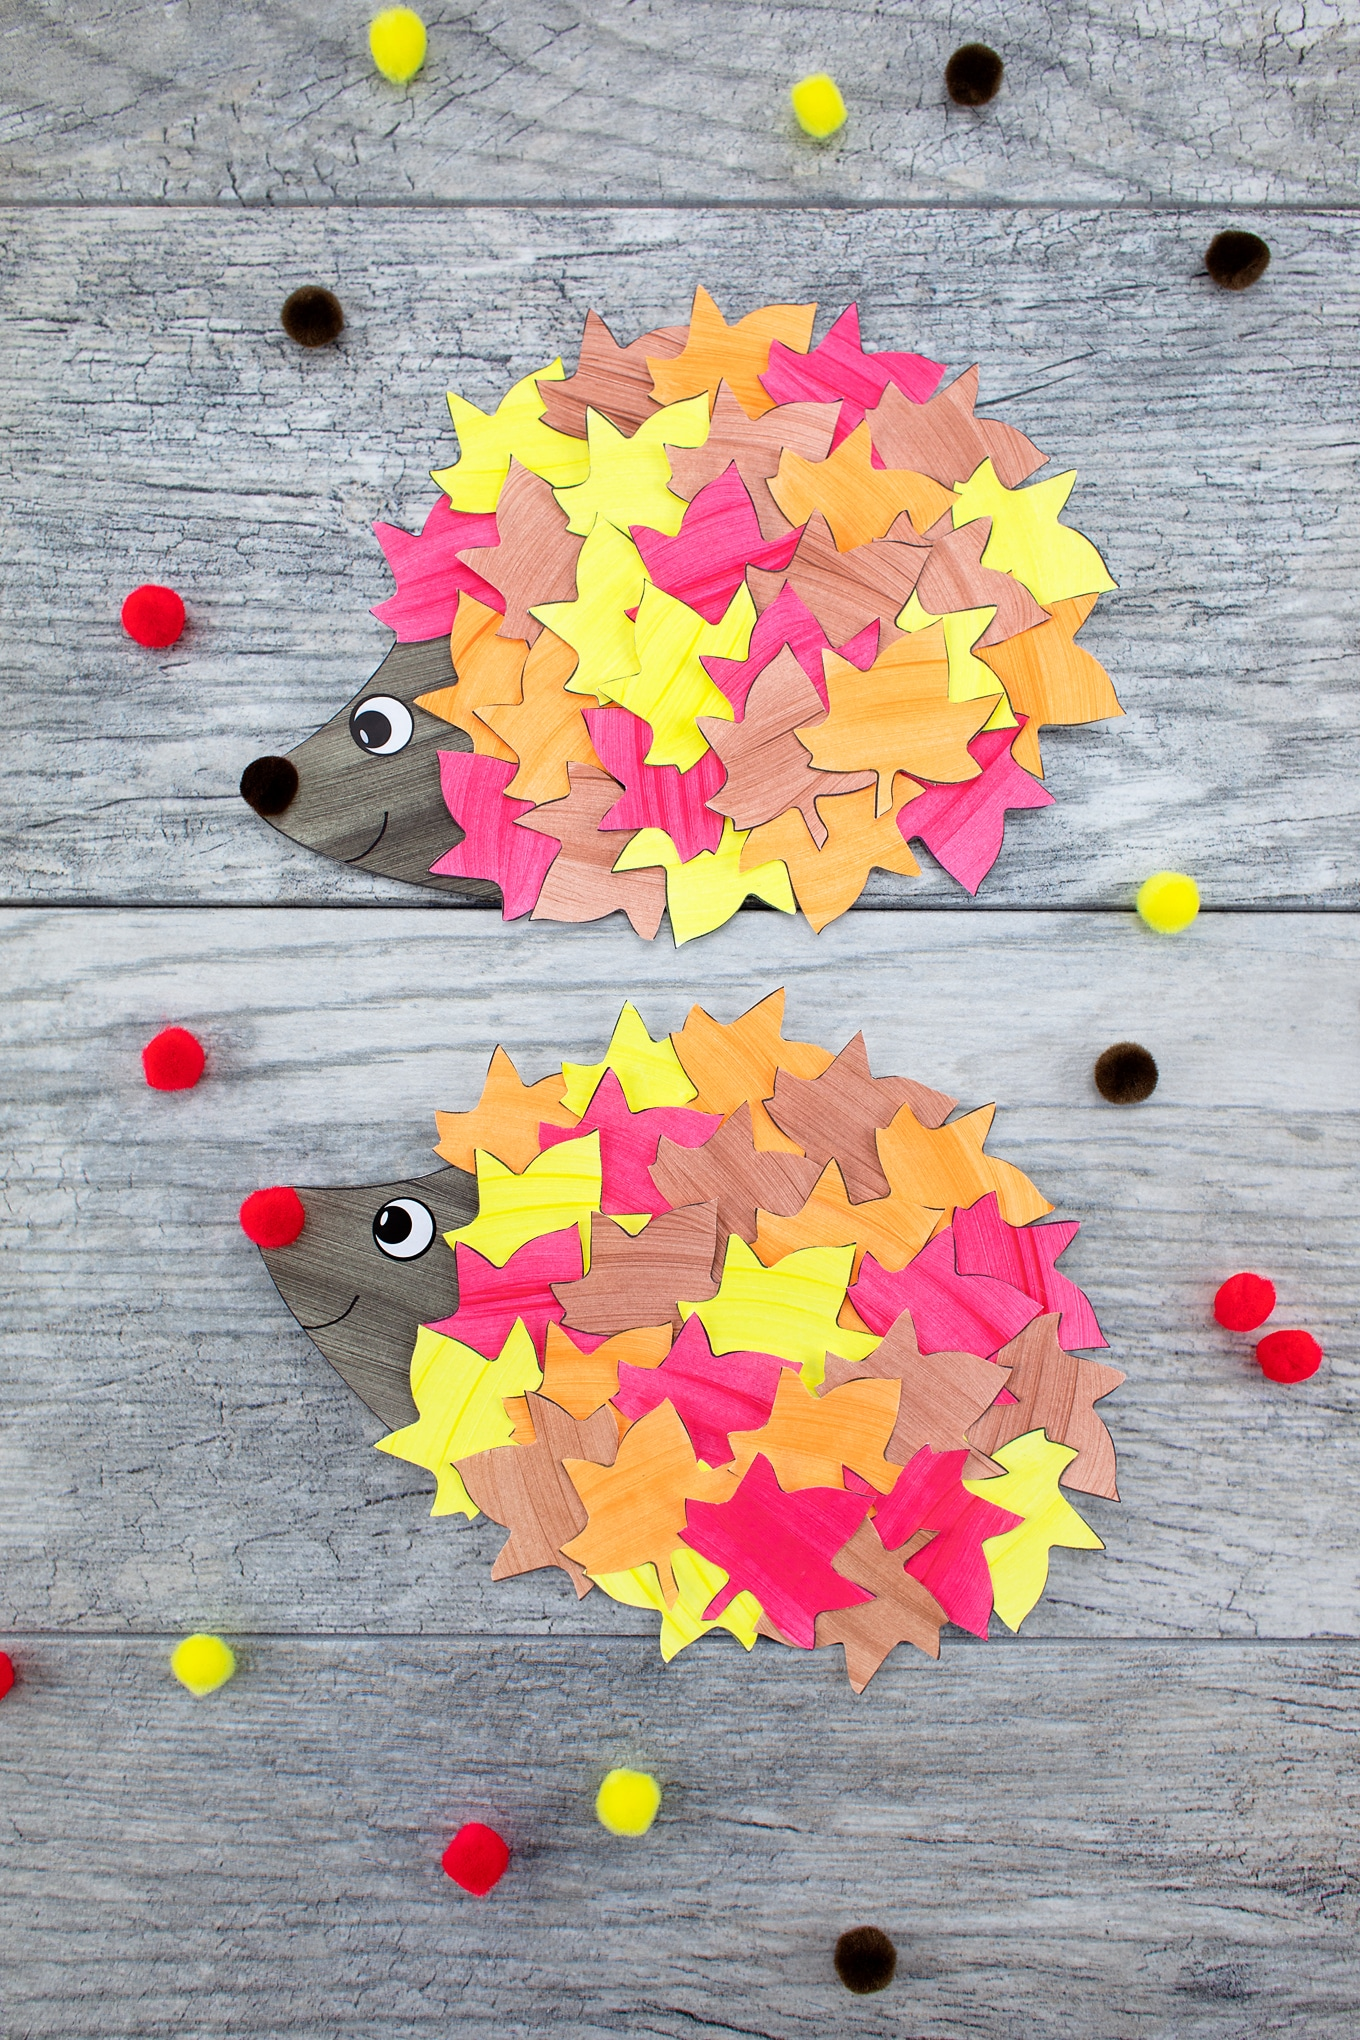 How to Make a Paper Leaf Hedgehog Craft